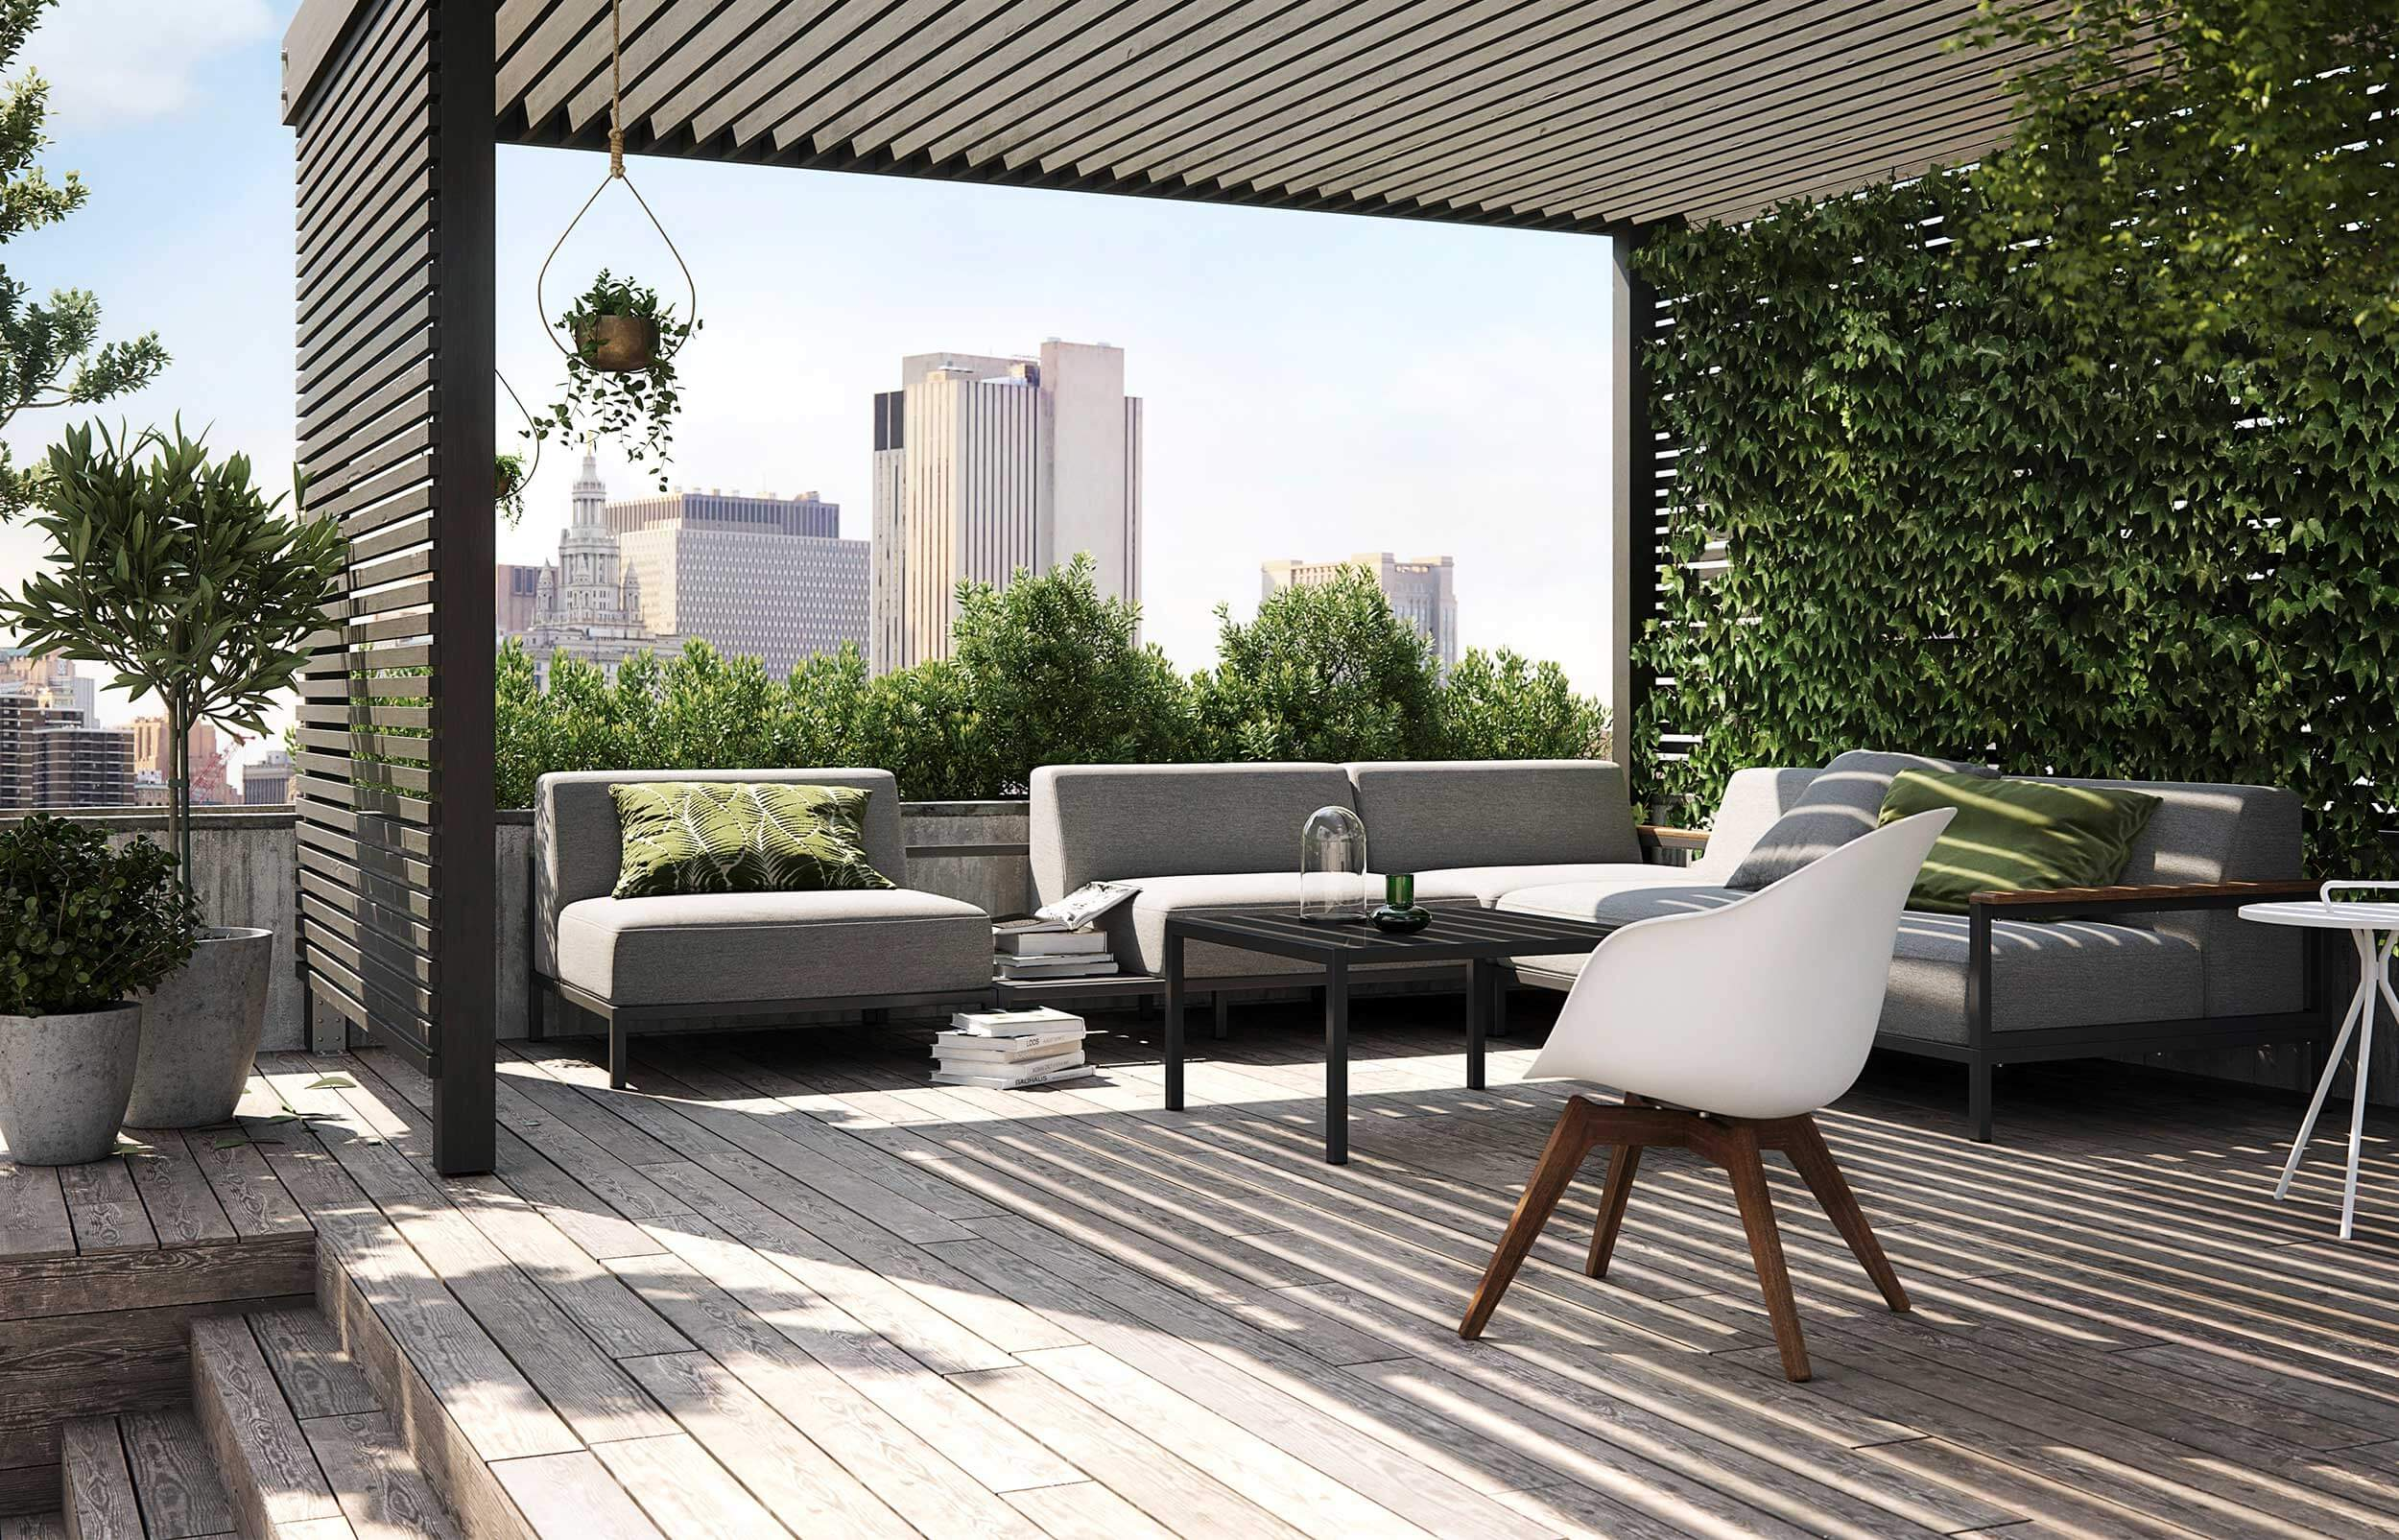 BoConcept's Rome garden sofa system and Adelaide chair on city rooftop terrace with pergola